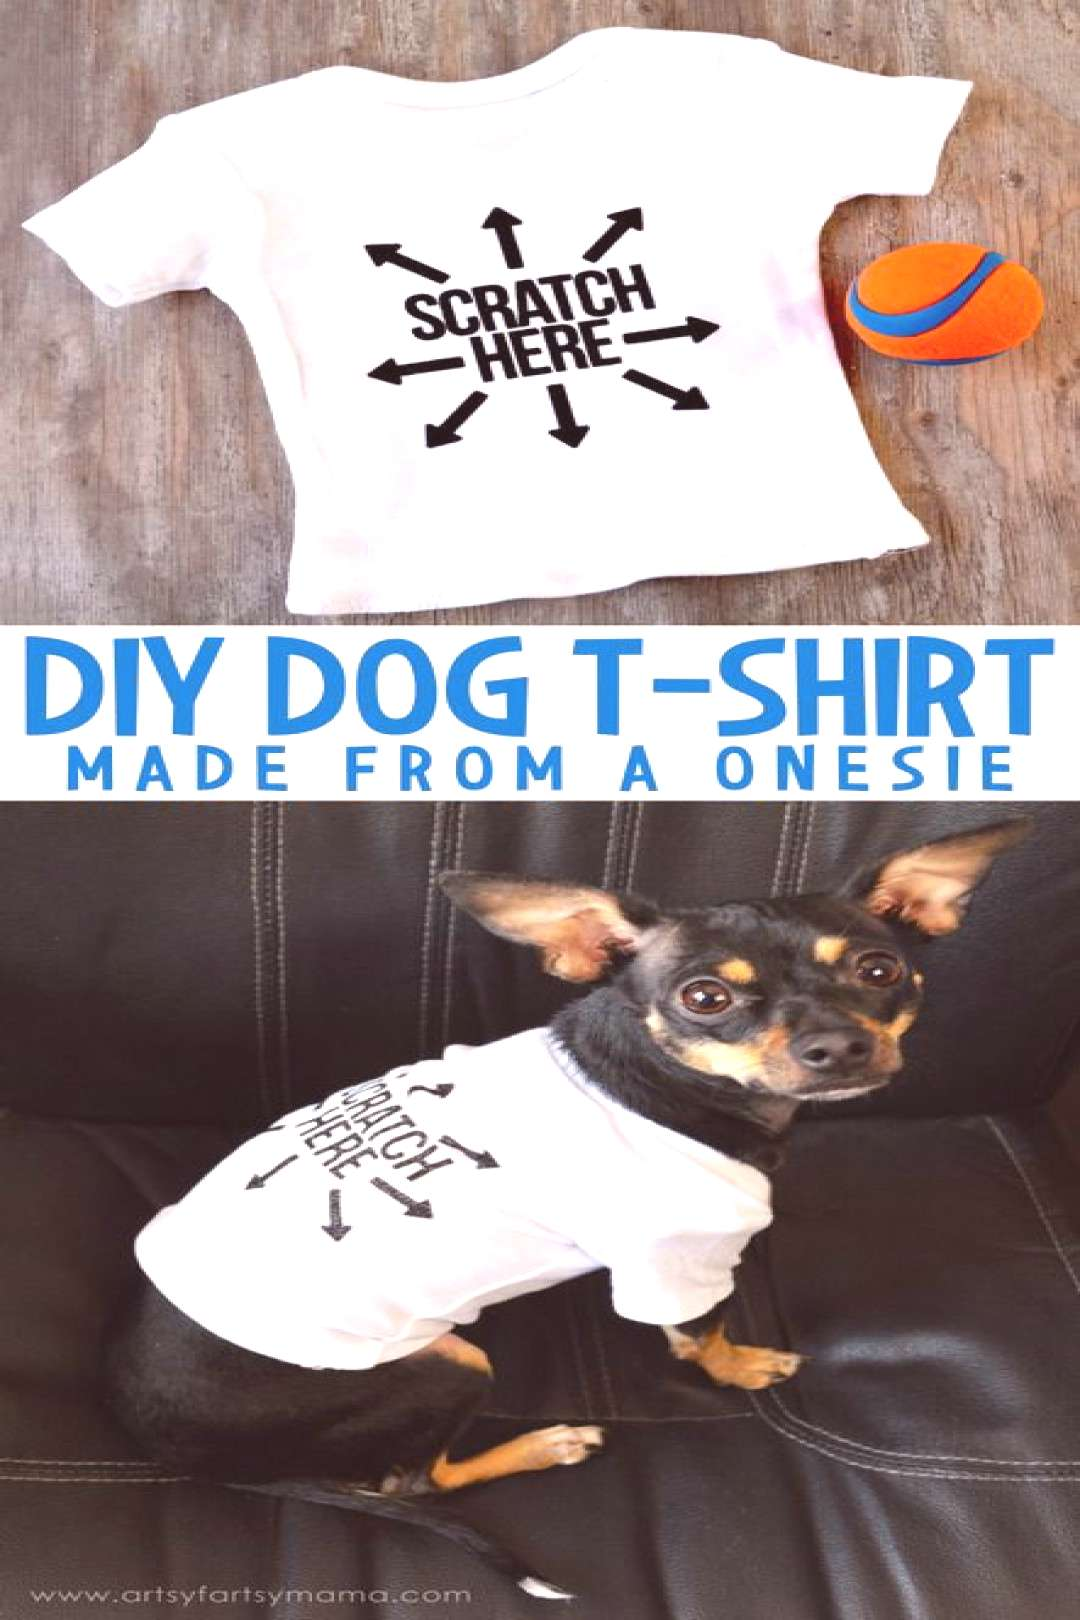 How to make a DIY Dog T-Shirt from a onesie at